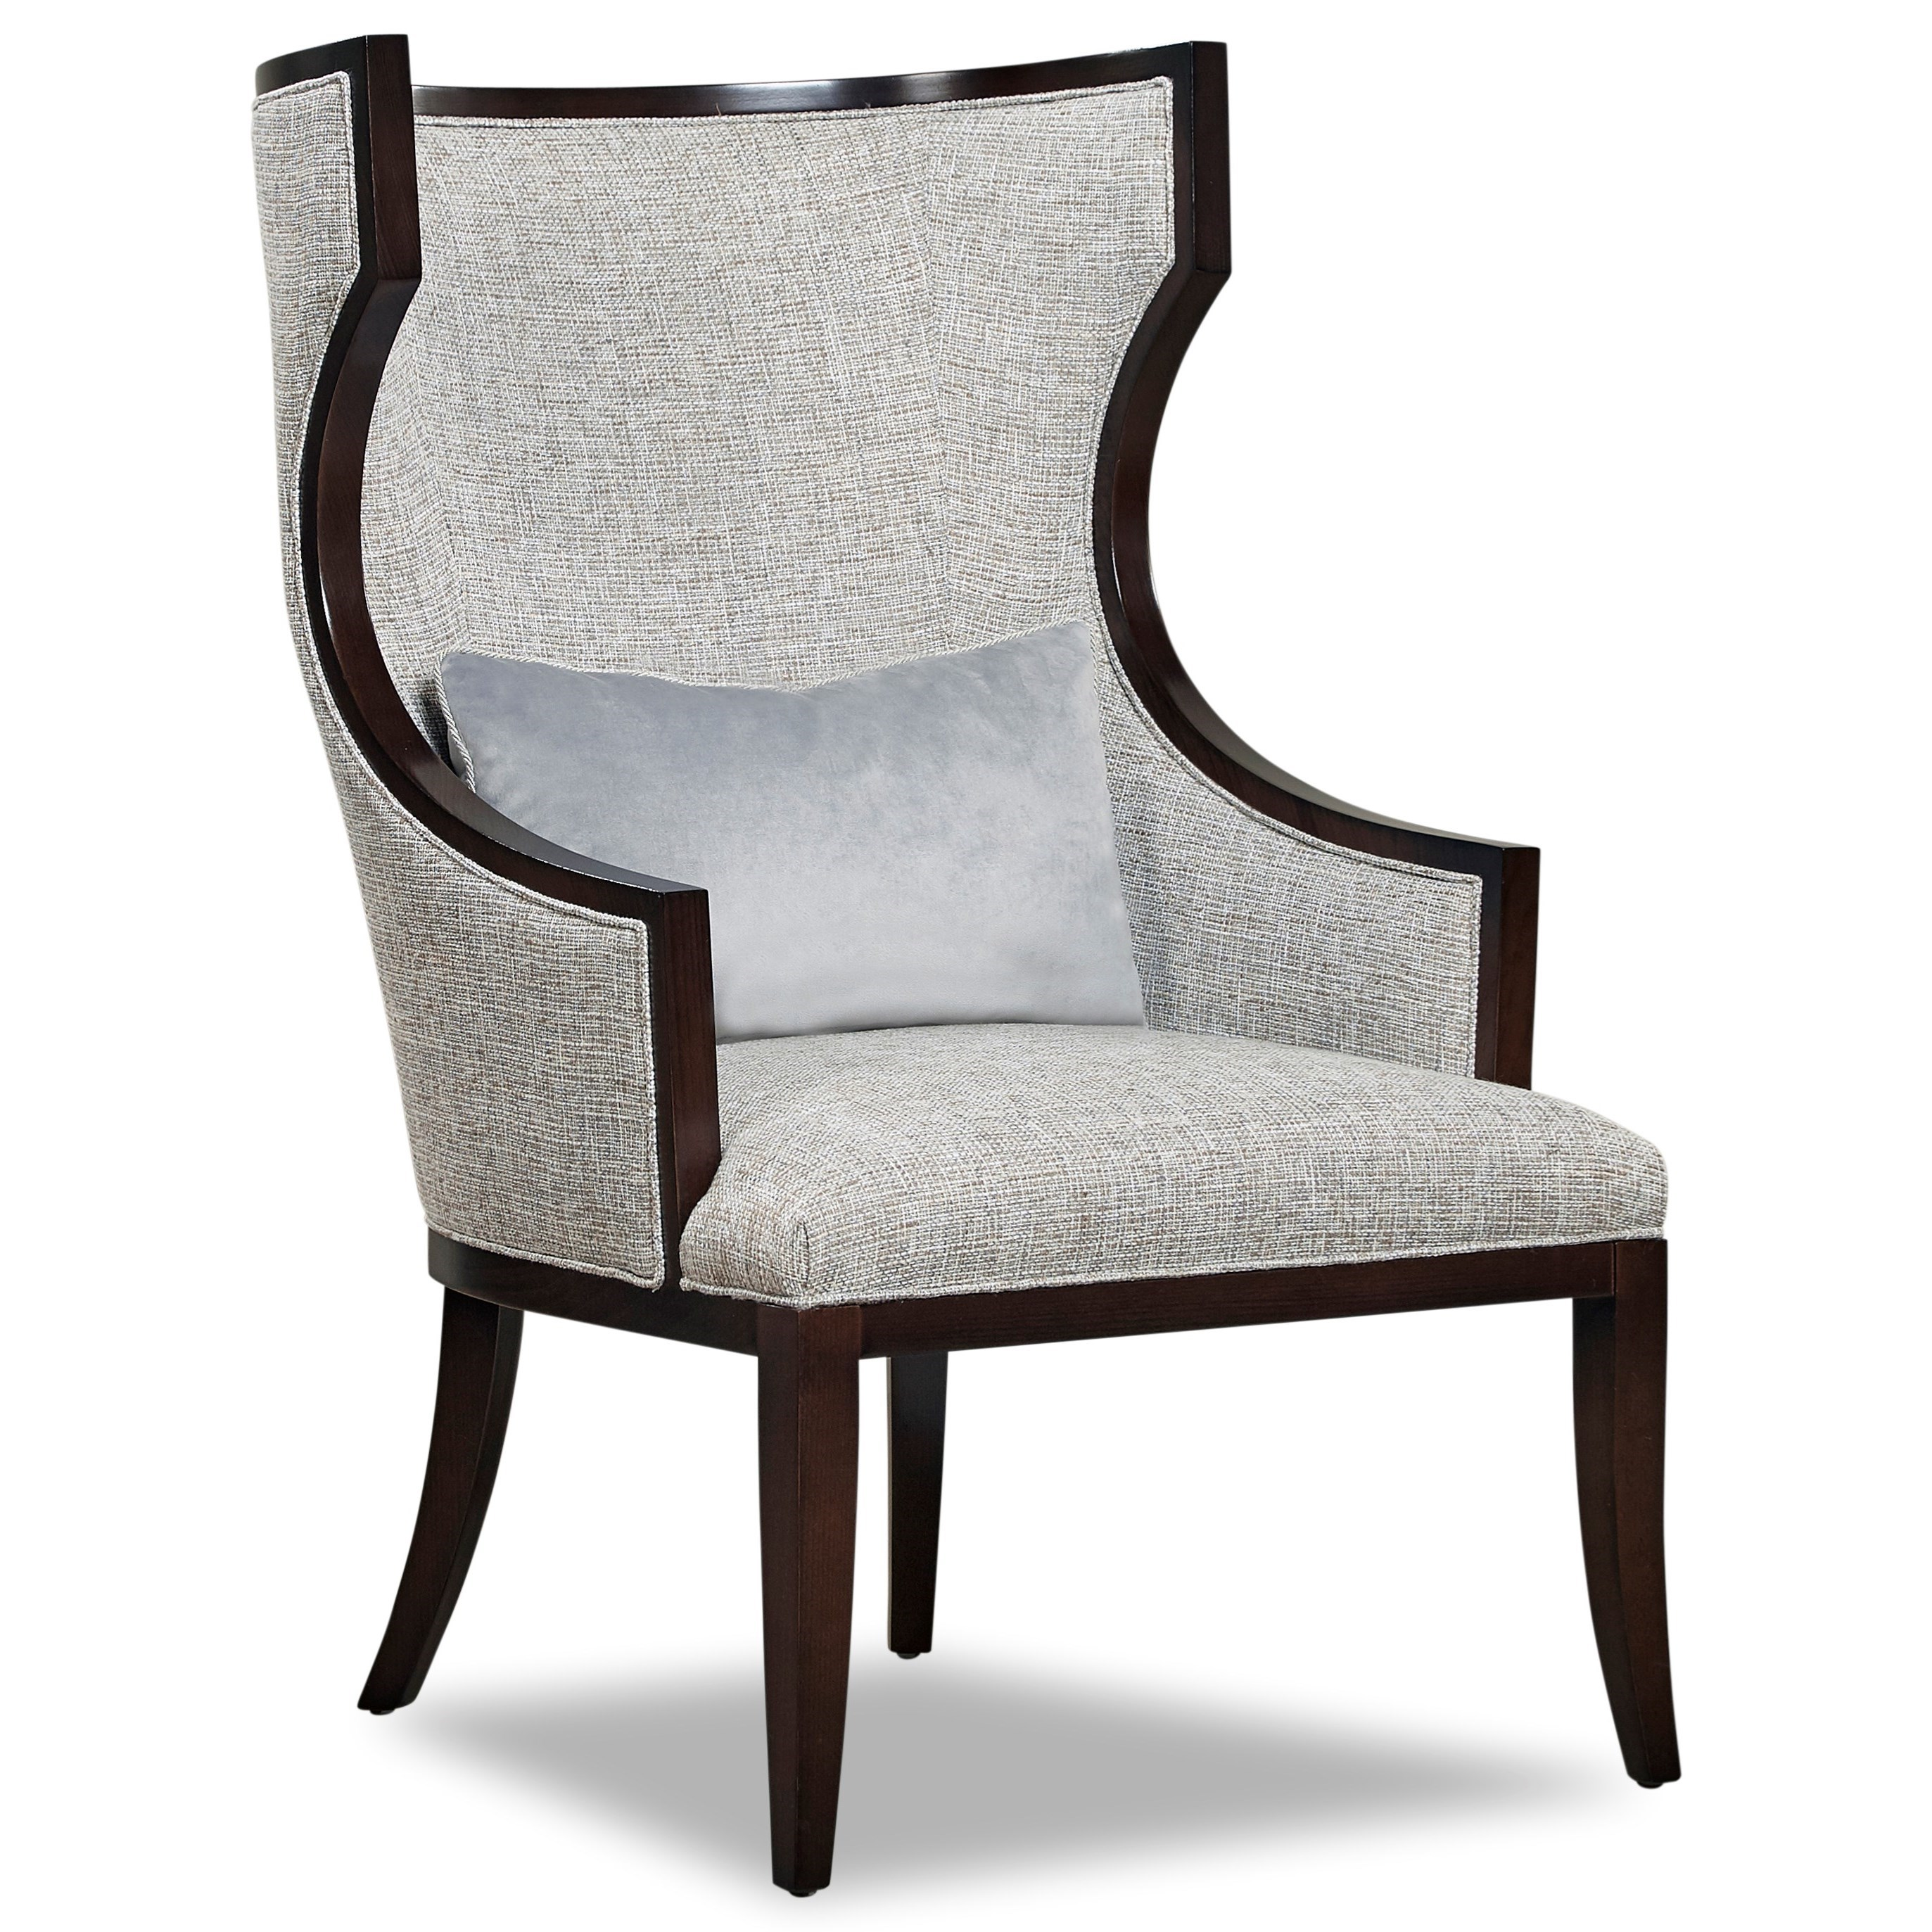 6125 Exposed Wood Accent Chair by Huntington House at Belfort Furniture